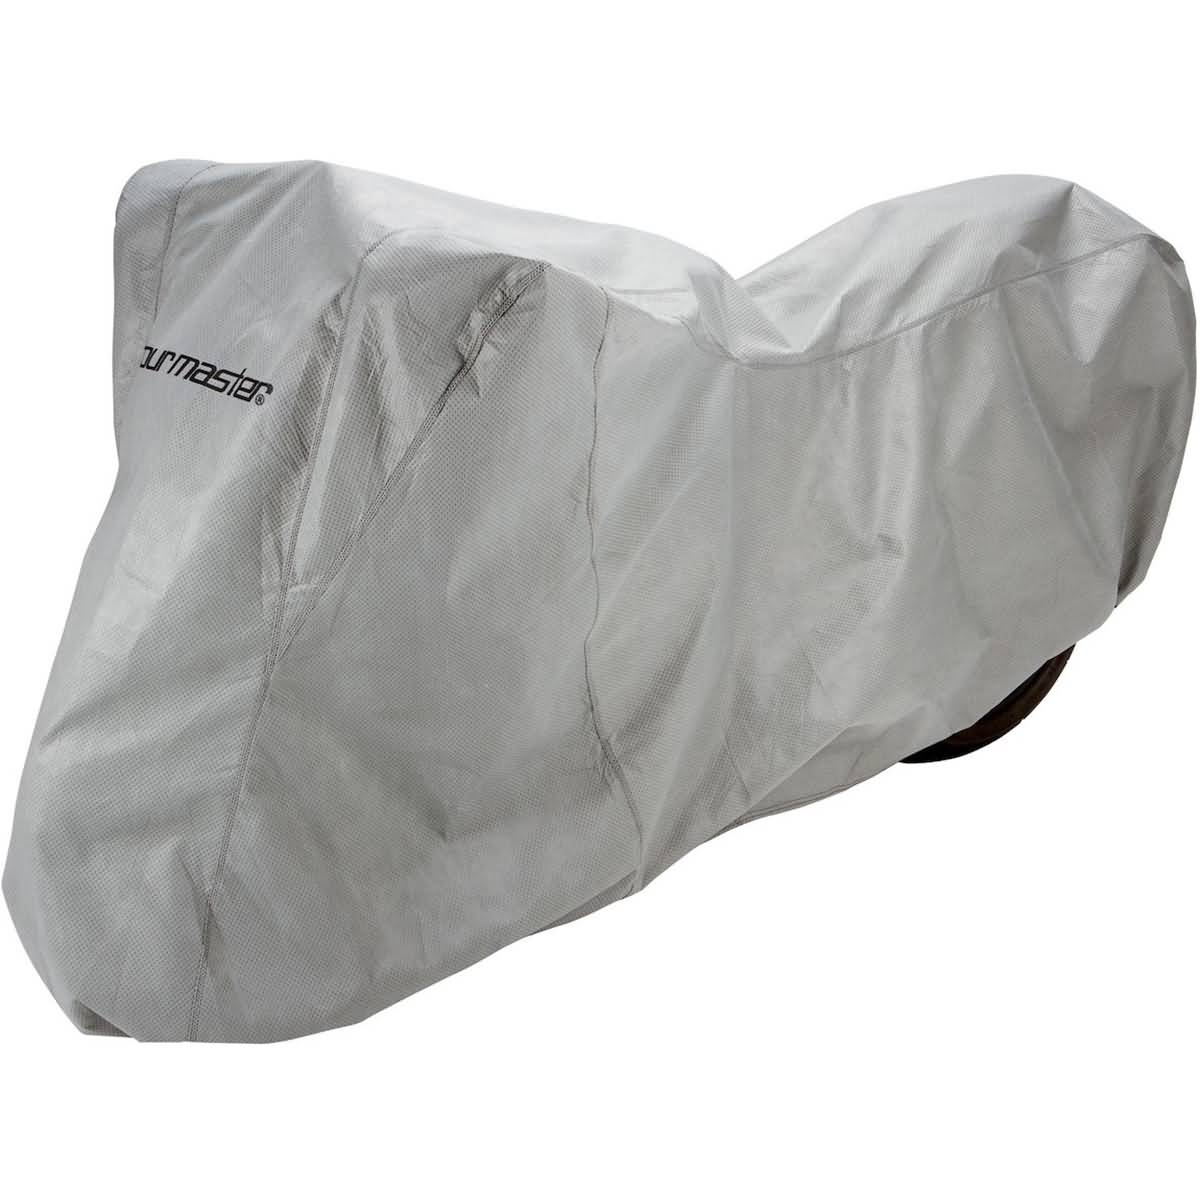 Tour Master Journey Motorcycle Cover Accessories-8004